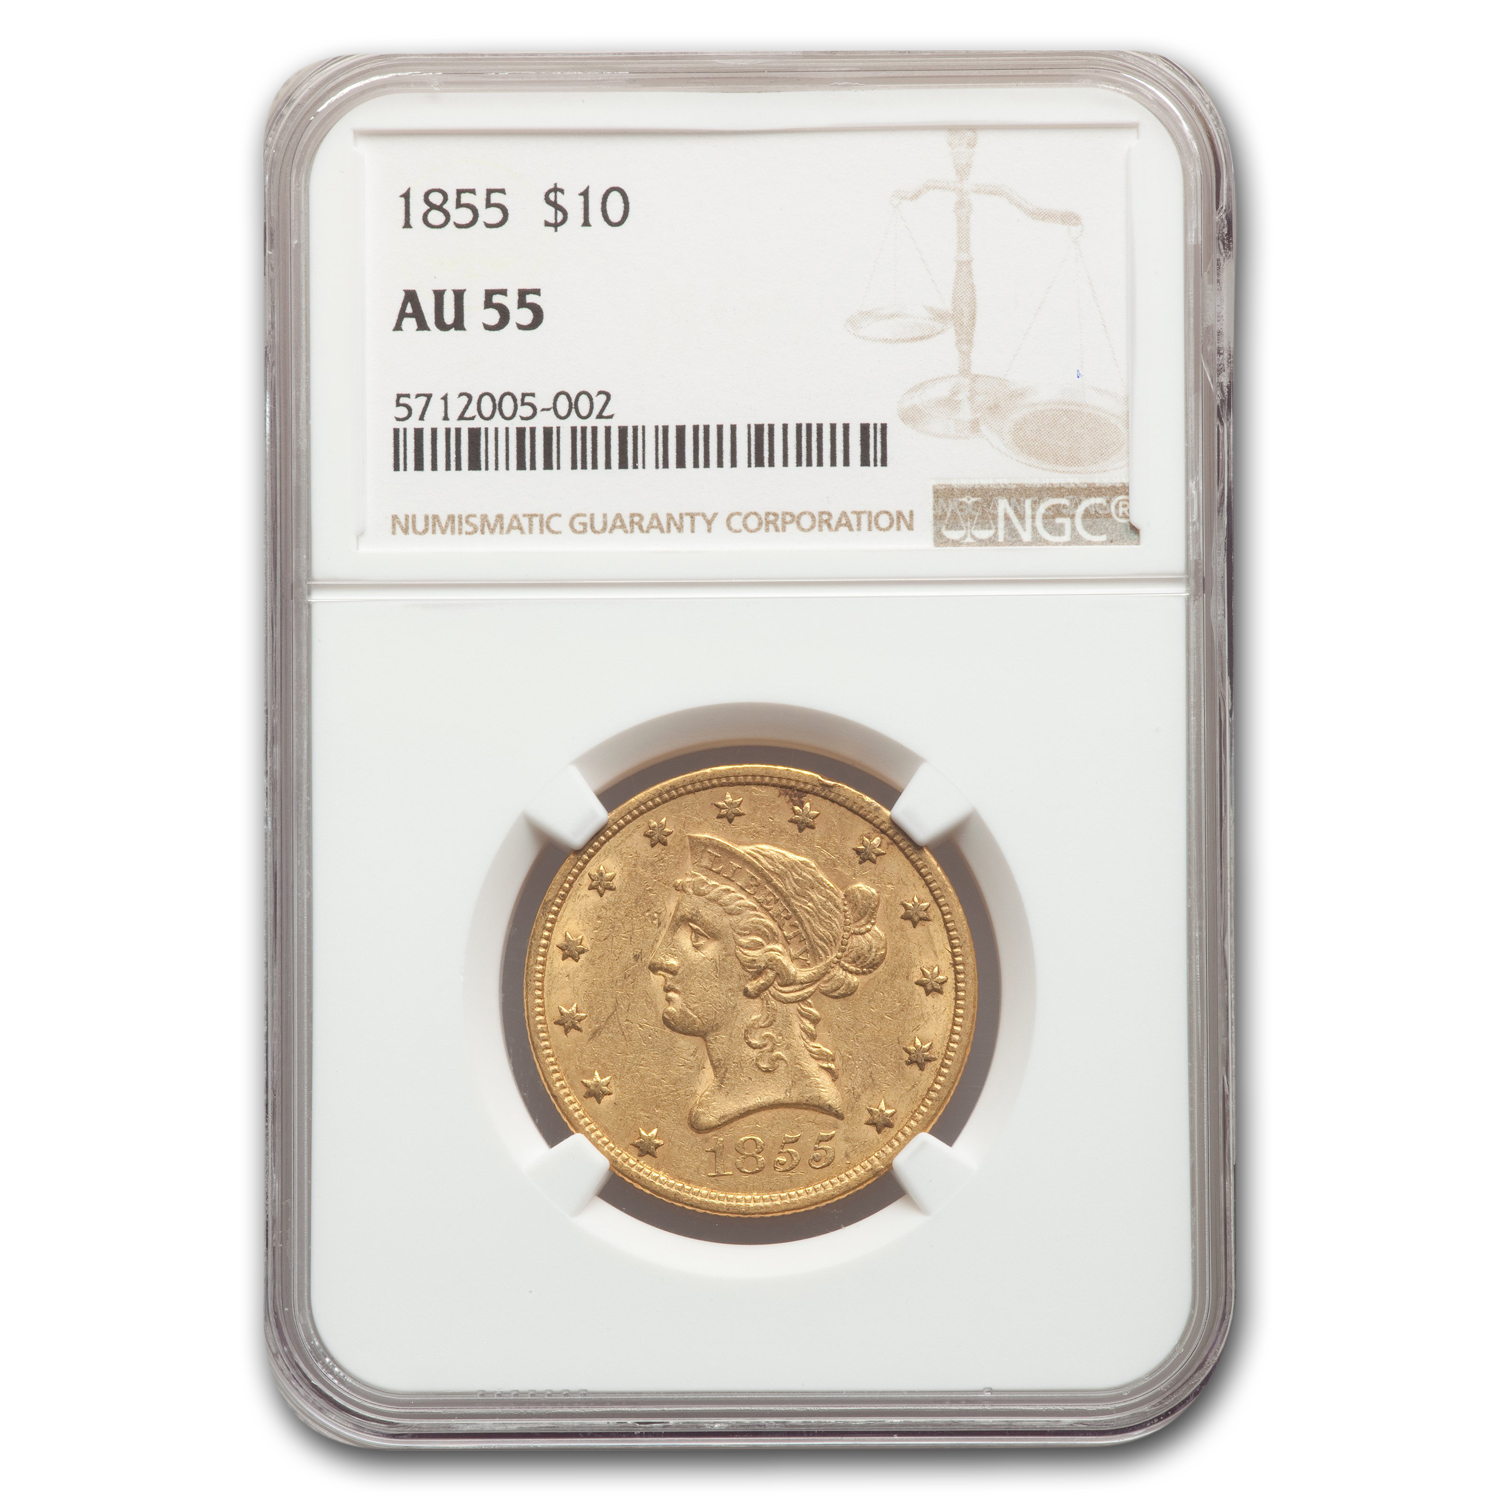 1855 $10 Liberty Gold Eagle - AU-55 NGC